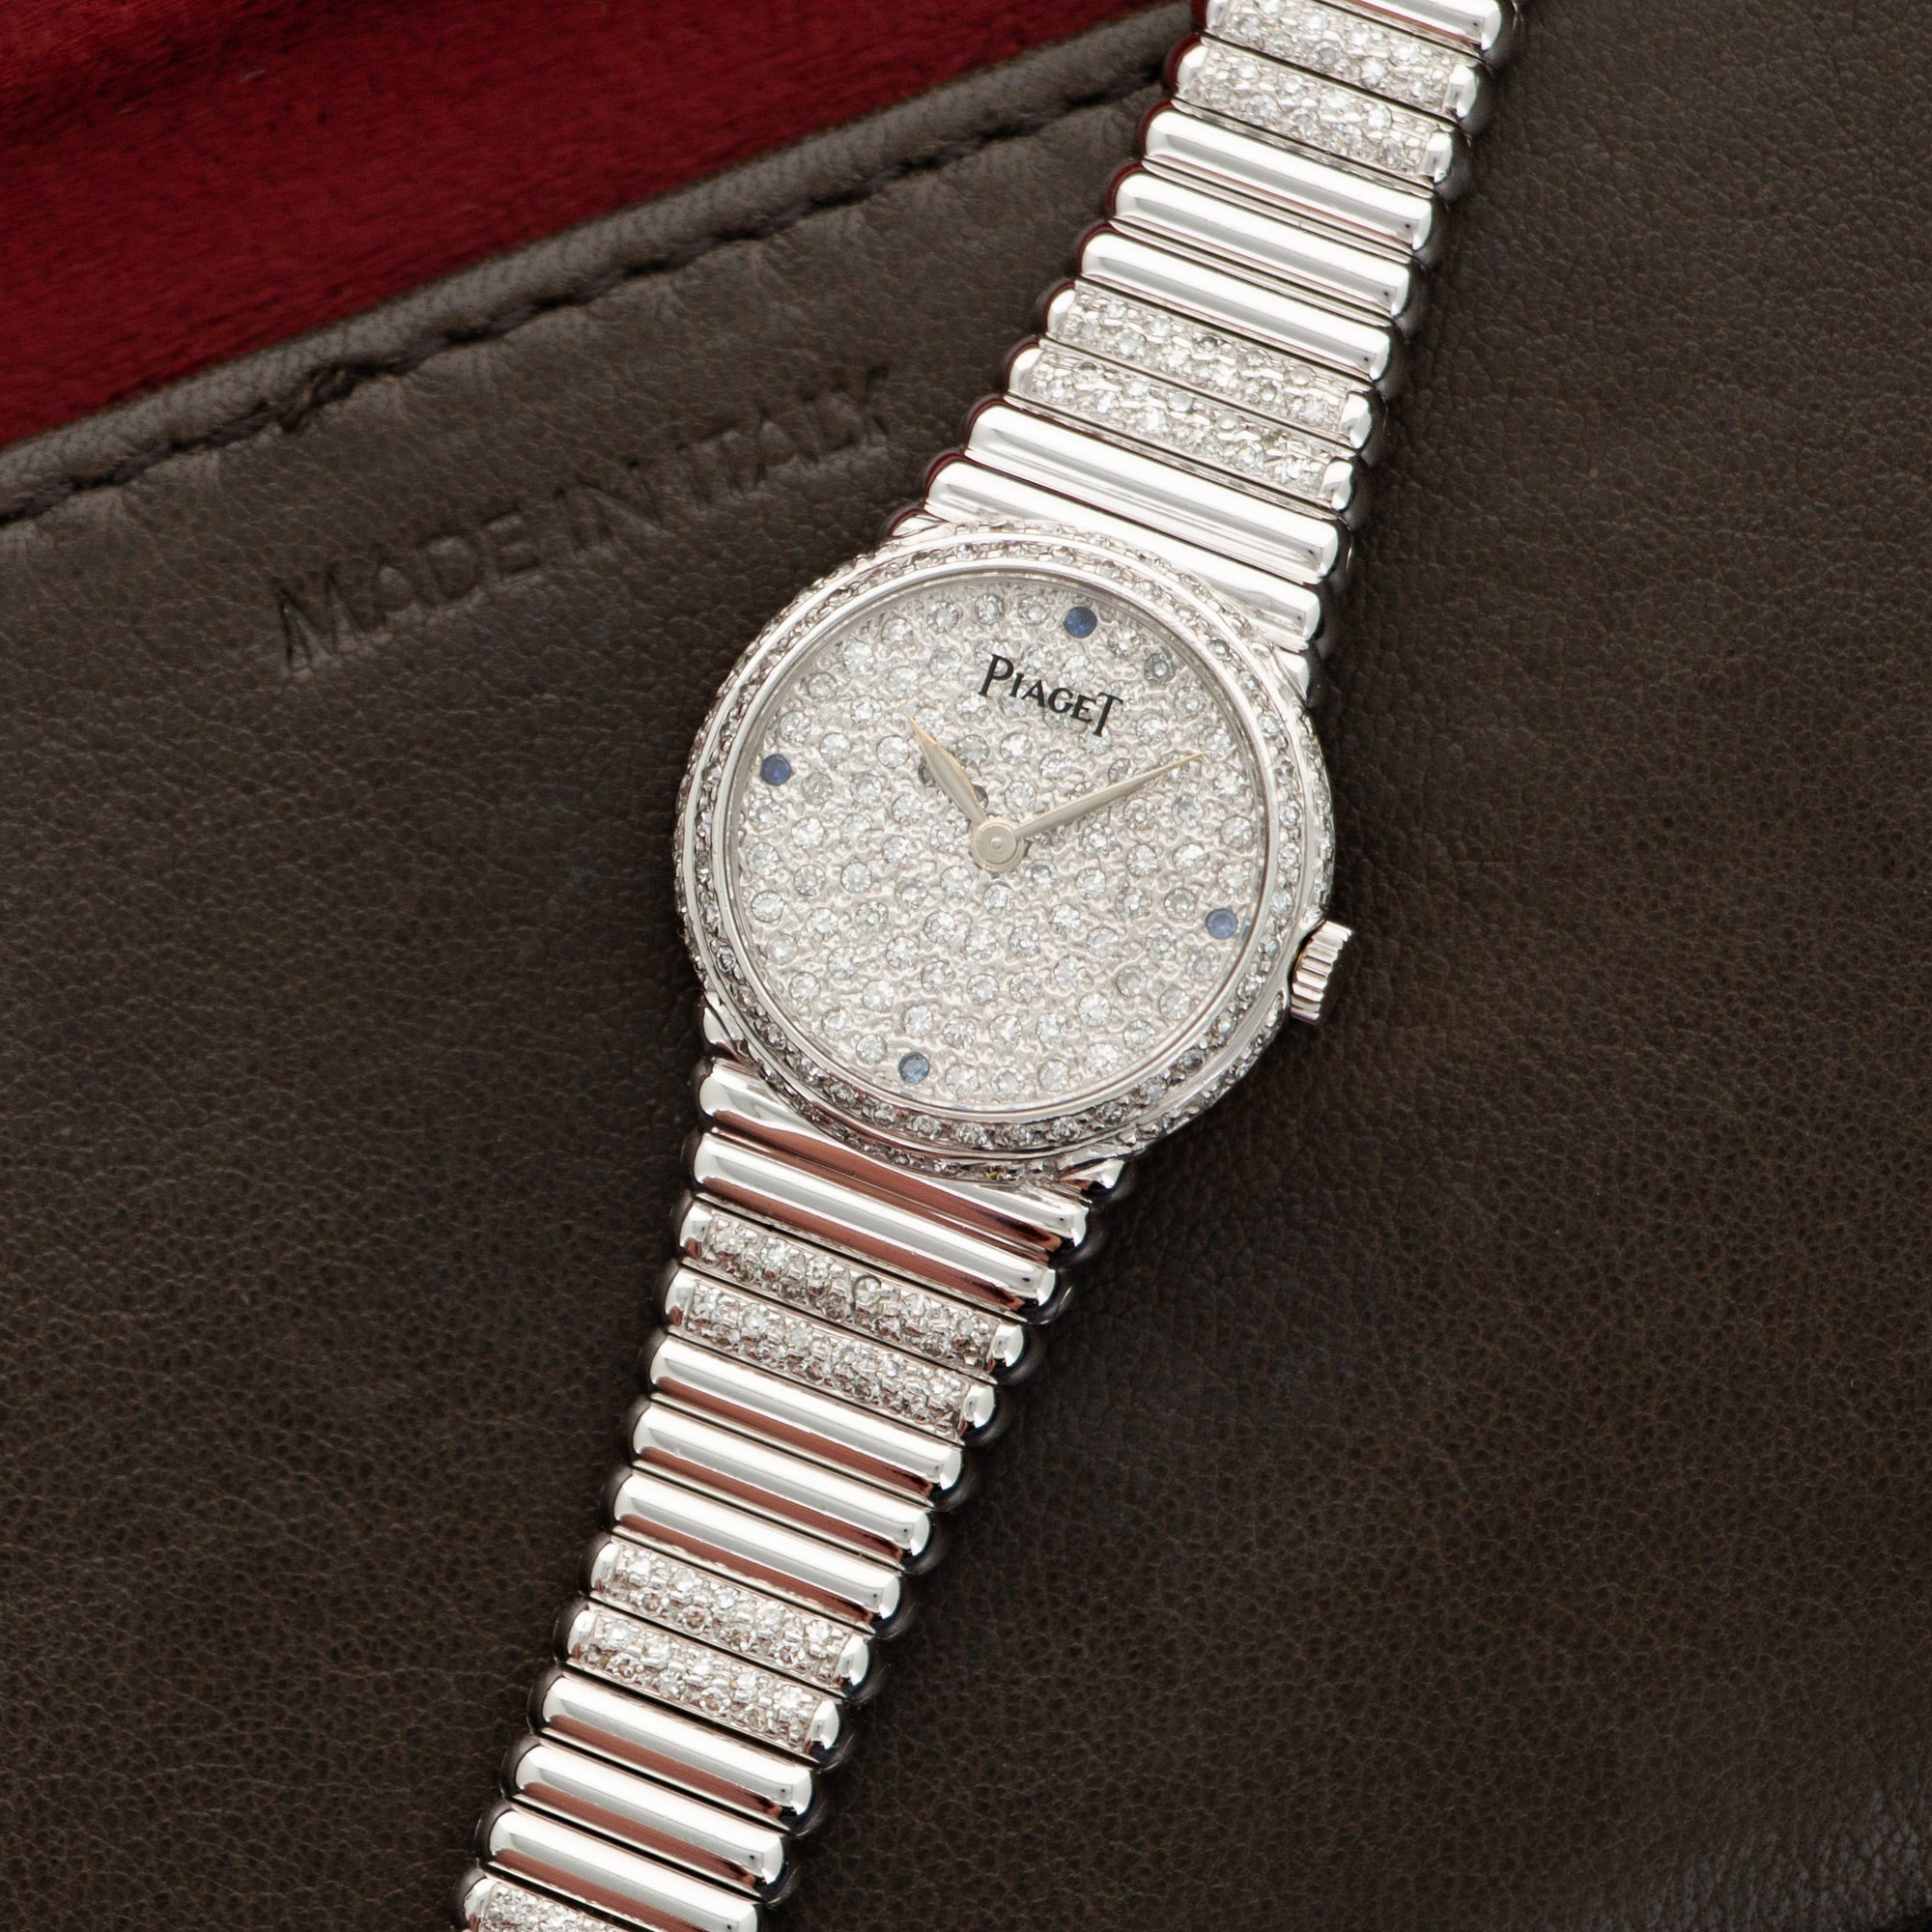 Piaget Vintage 4152 18k WG  Excellent Ladies 18k WG Pave Diamond with Sapphire Markers 22mm Manual 1970s White Gold with Diamond Bracelet (180mm) Leather Travel Case